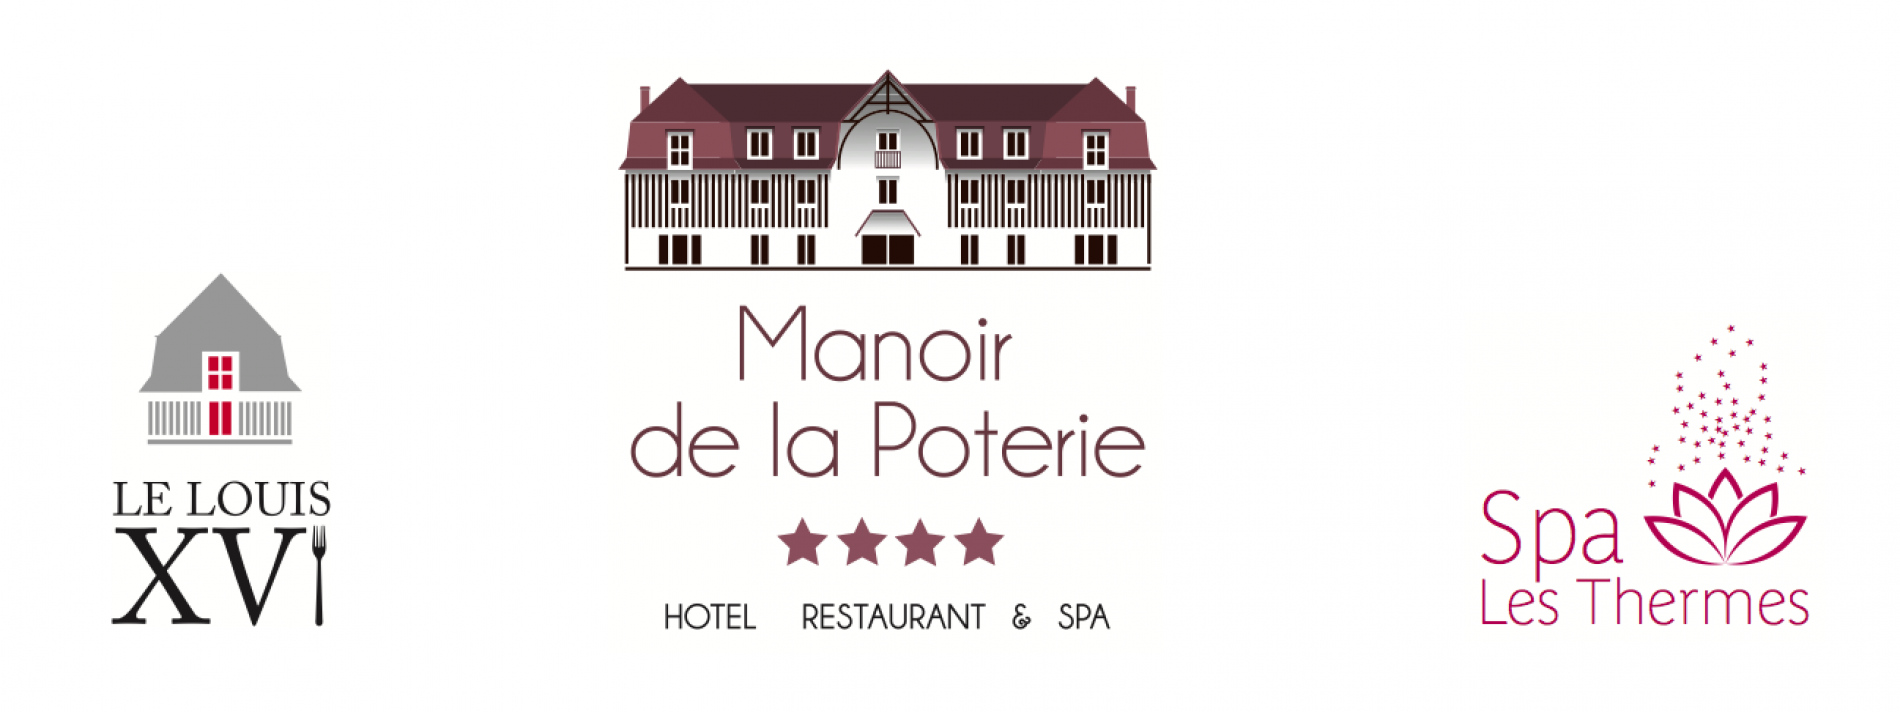 Our second hotel 17 kms from the Manoir de la Poterie